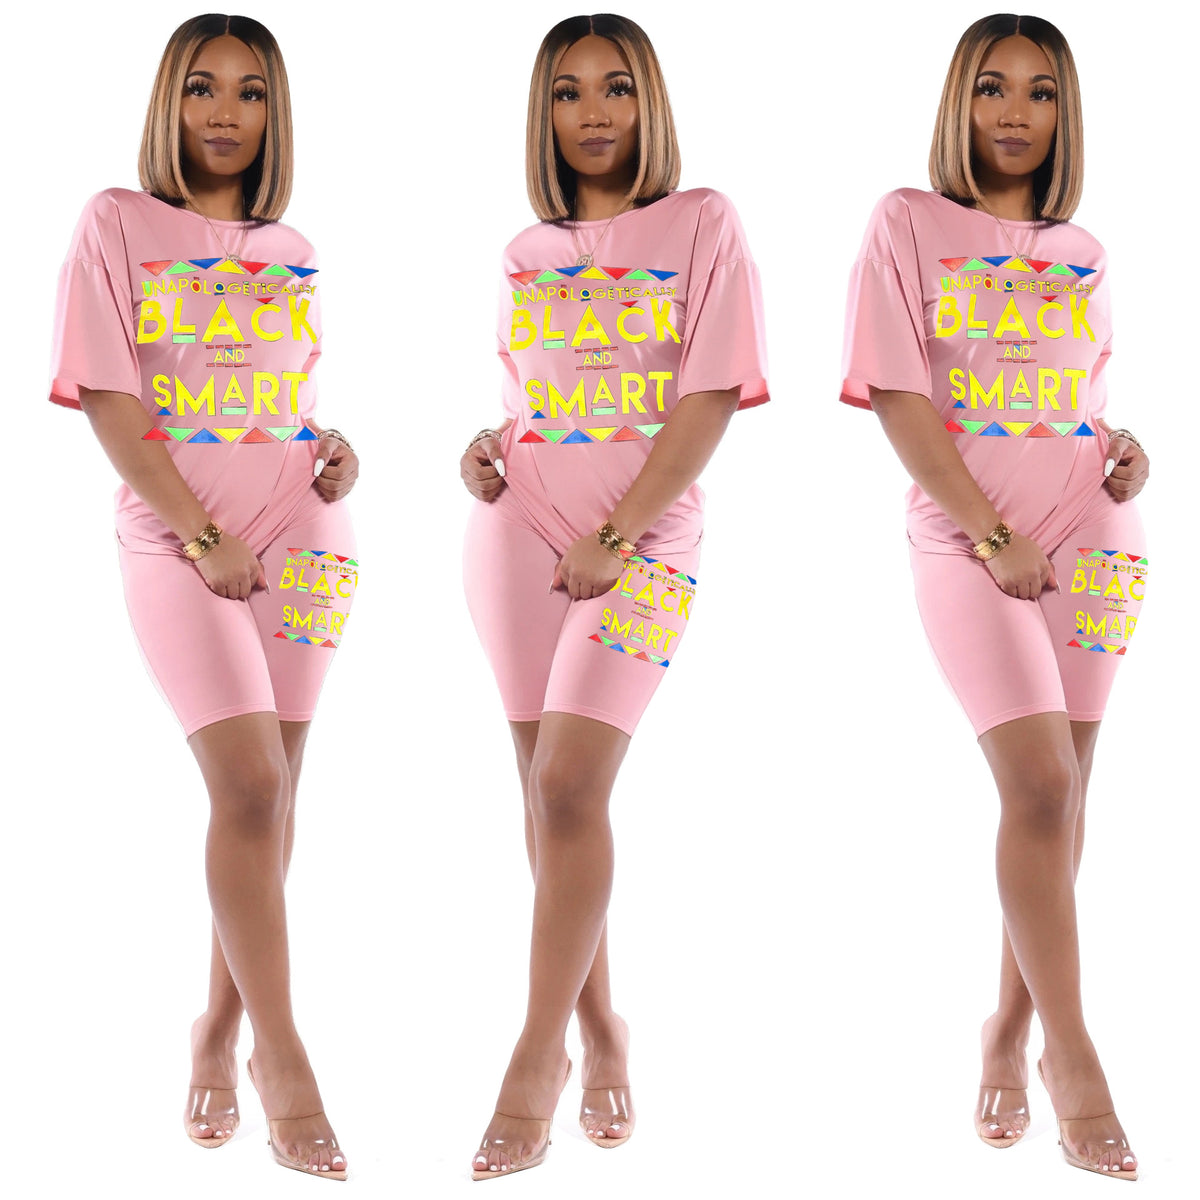 Summer Women Set Tracksuits Letter Print Short Sleeve Tops+Shorts Night Party Street Two Piece Suit Outfits GL6139